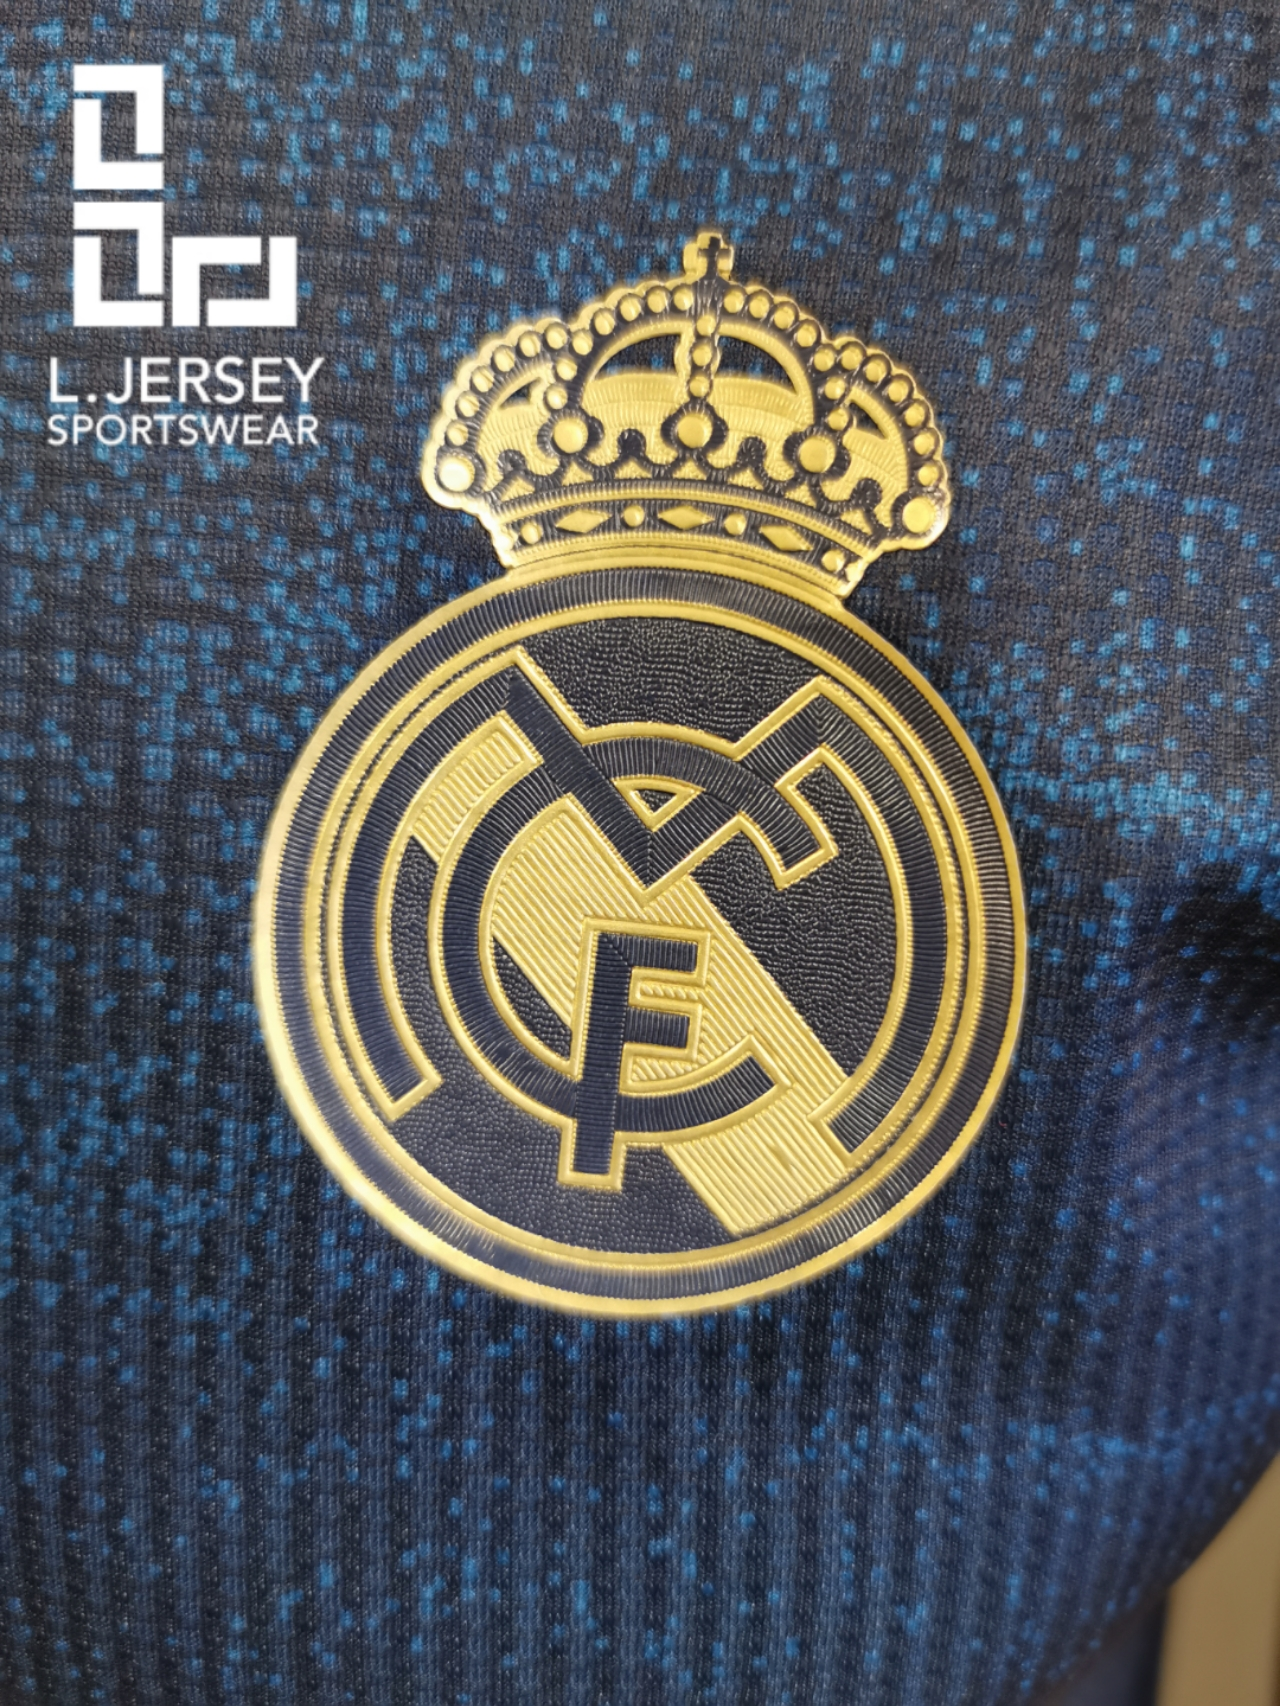 [Player Issue] Real Madrid Men Away Season 19/20 Jersey